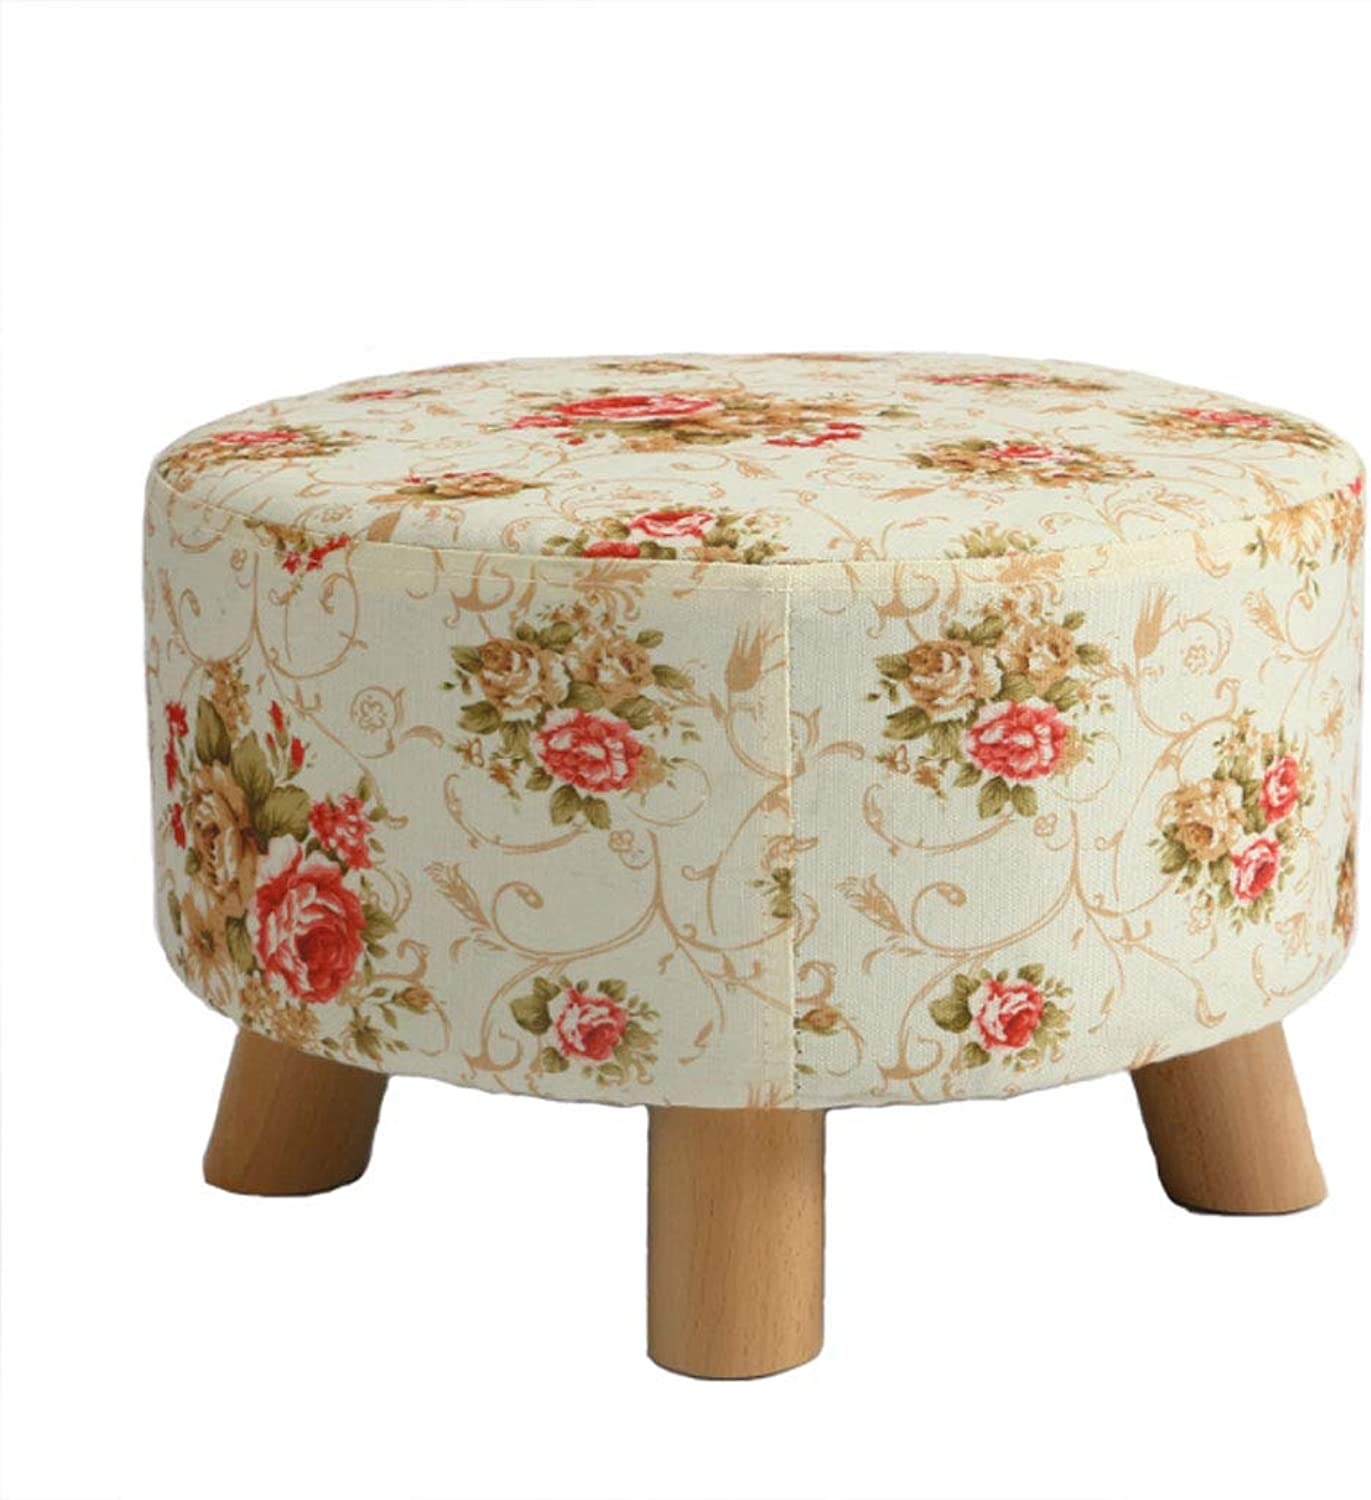 NJ stools  Household Fabric Stool Solid Wood Stool Sofa Bench For shoes Bench (color   color, Size   42x26cm)